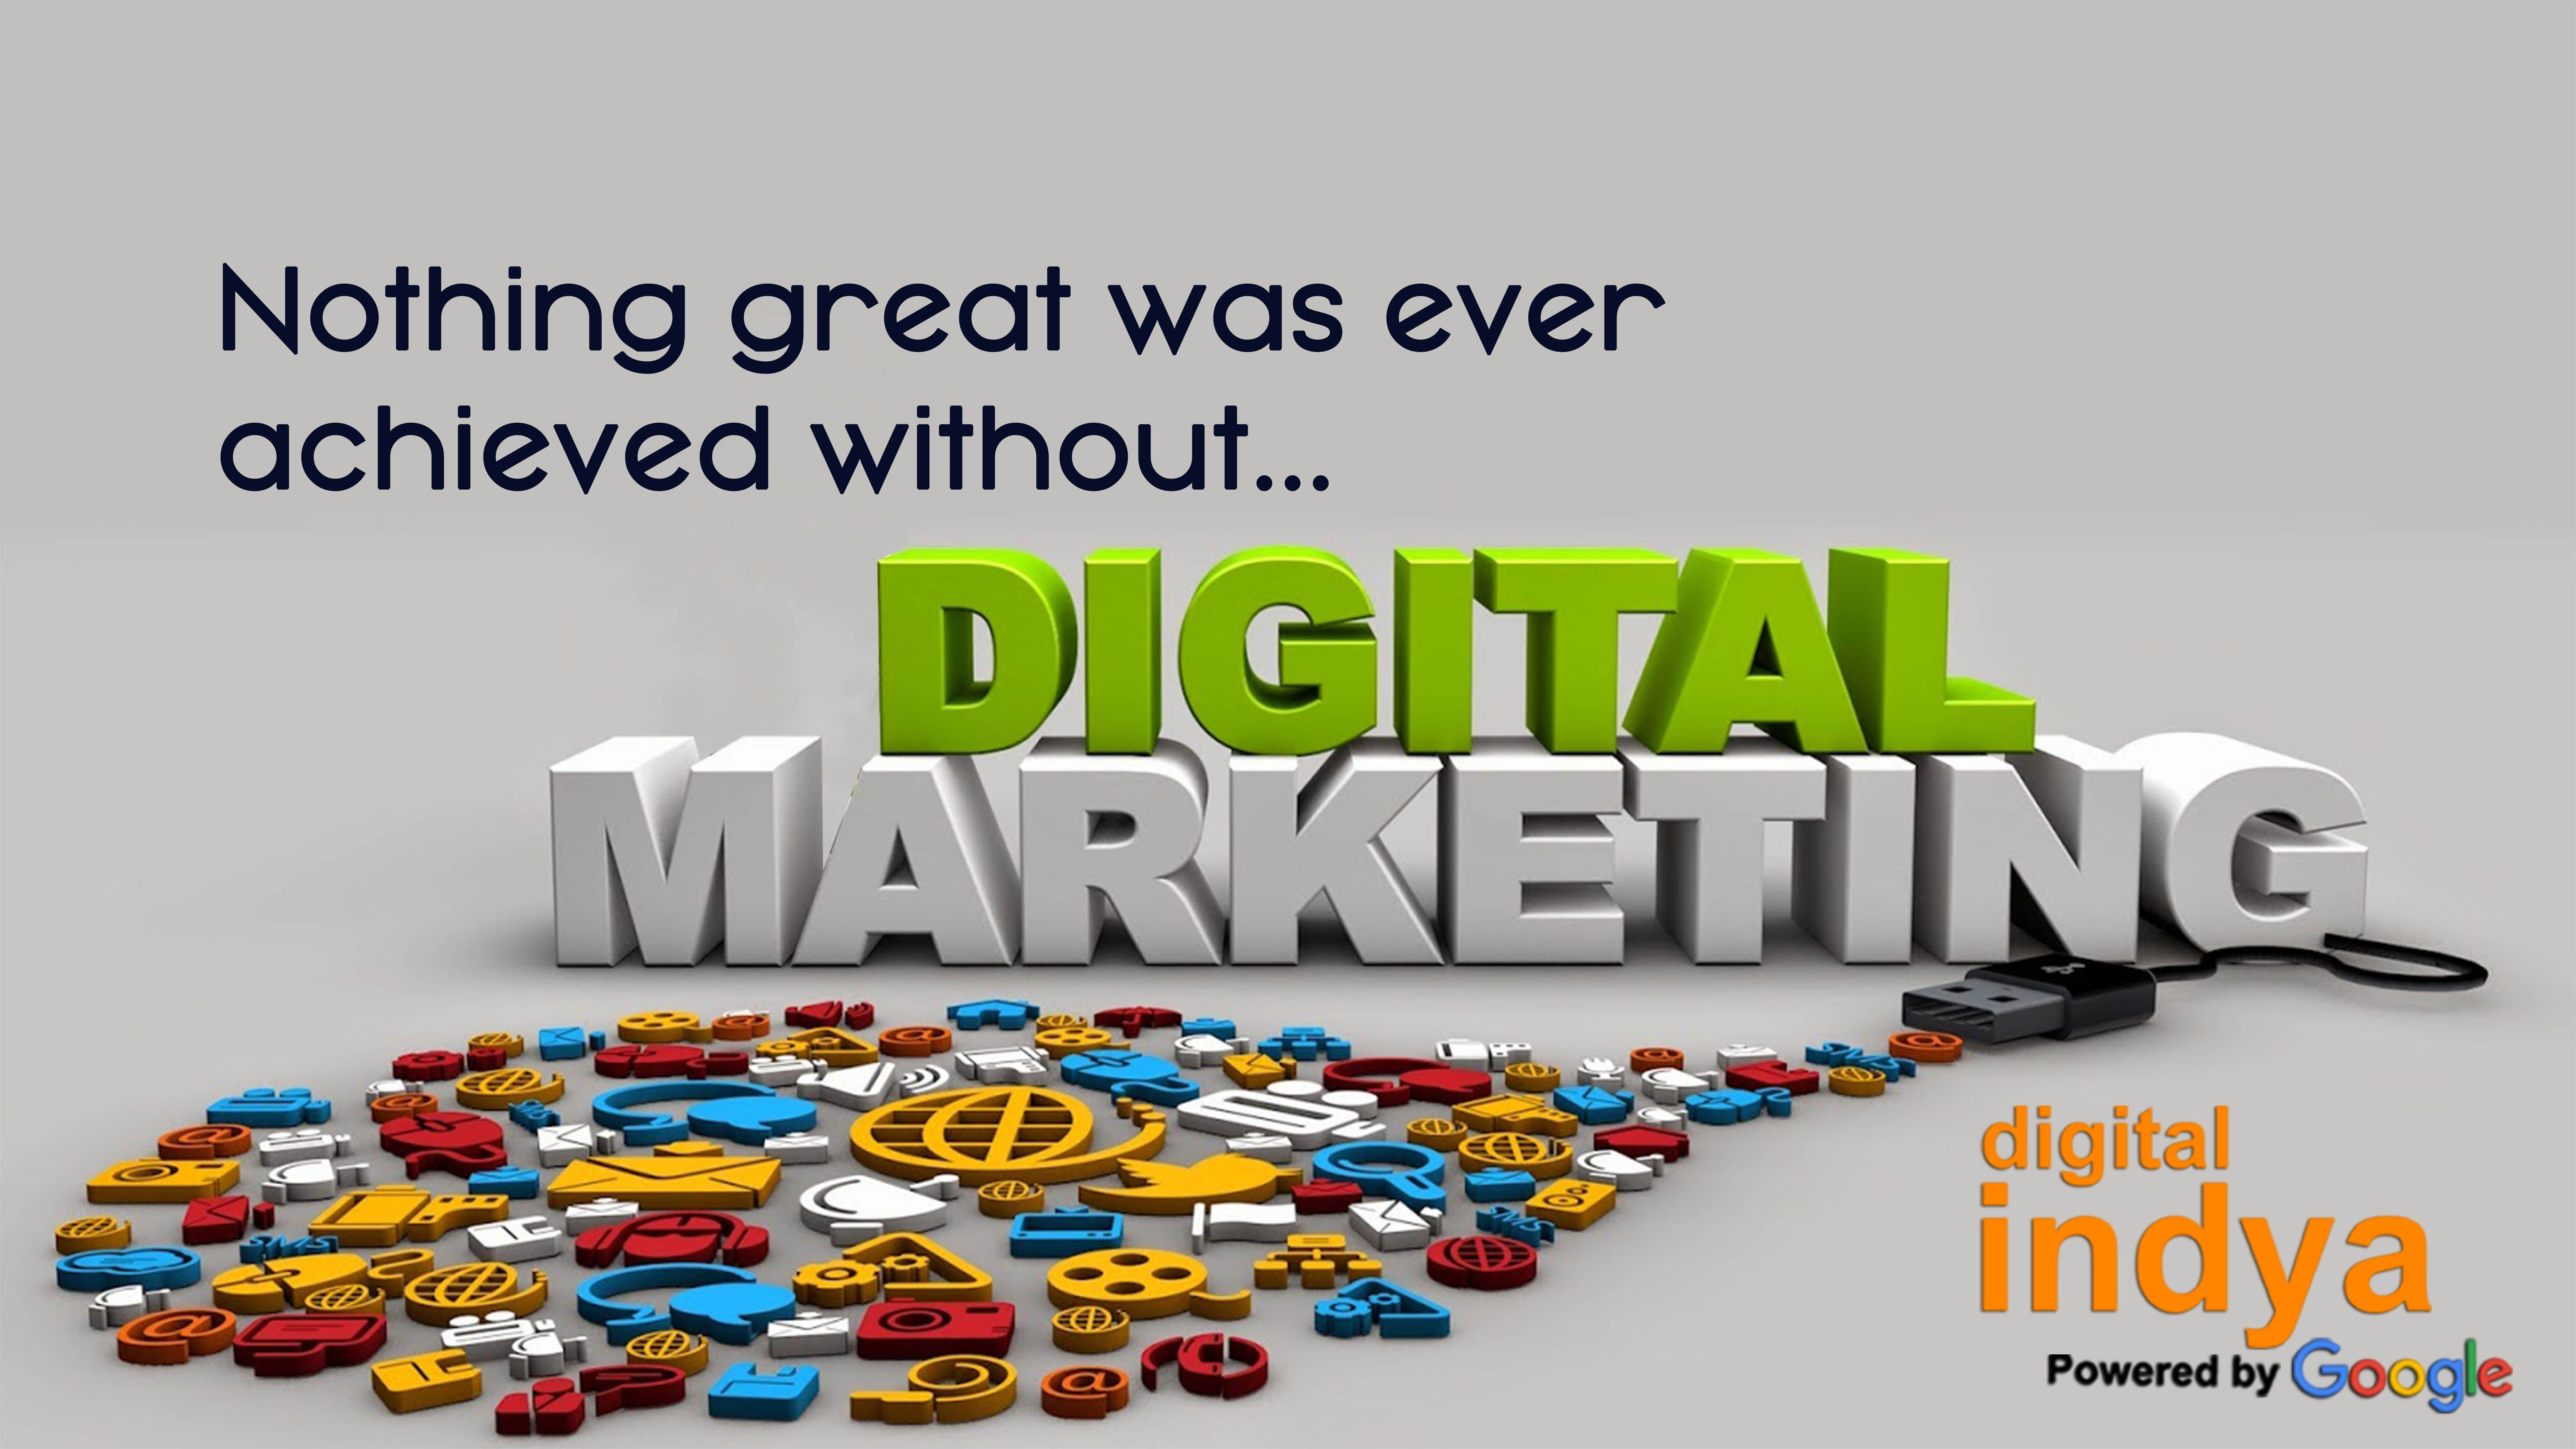 At #DigitalIndya Digital Marketing is an umbrella for the marketing of products or services using digital technologies.